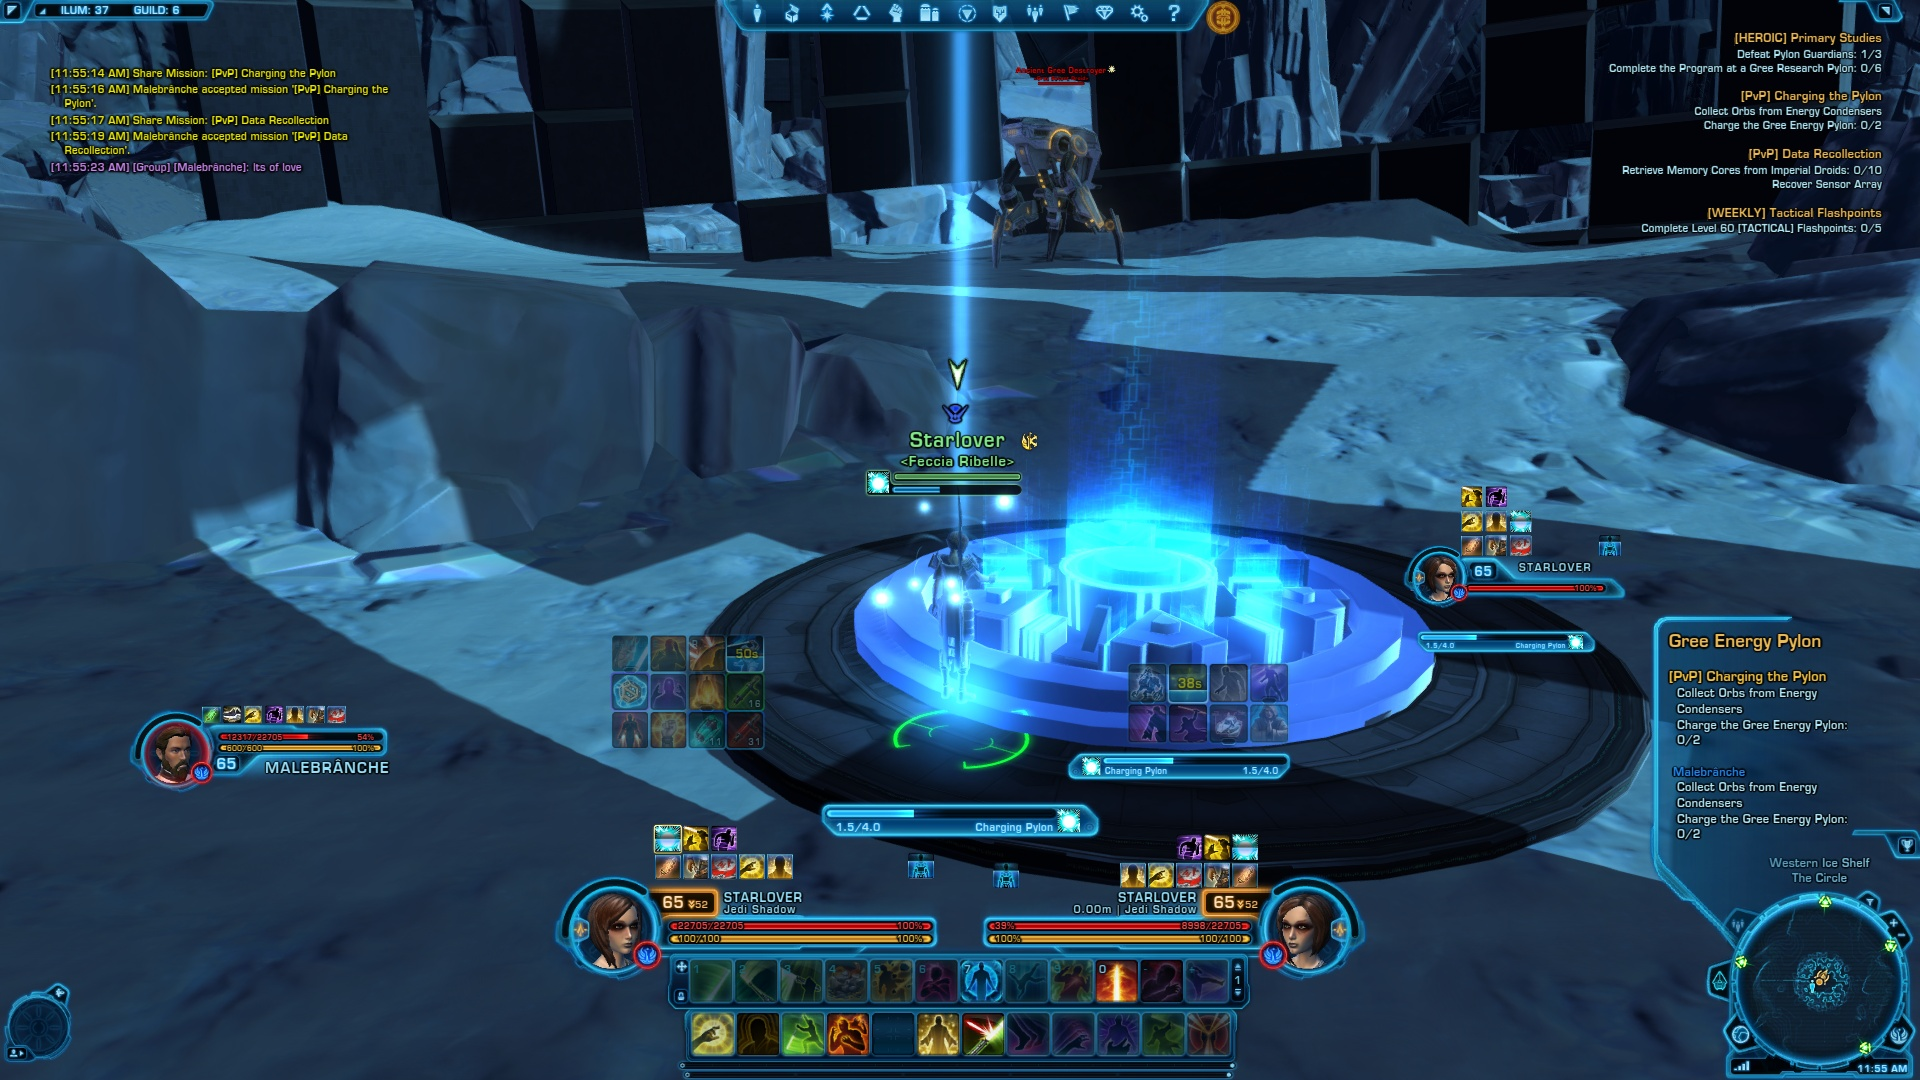 Relics of The Gree SWTOR: PvP Pylon